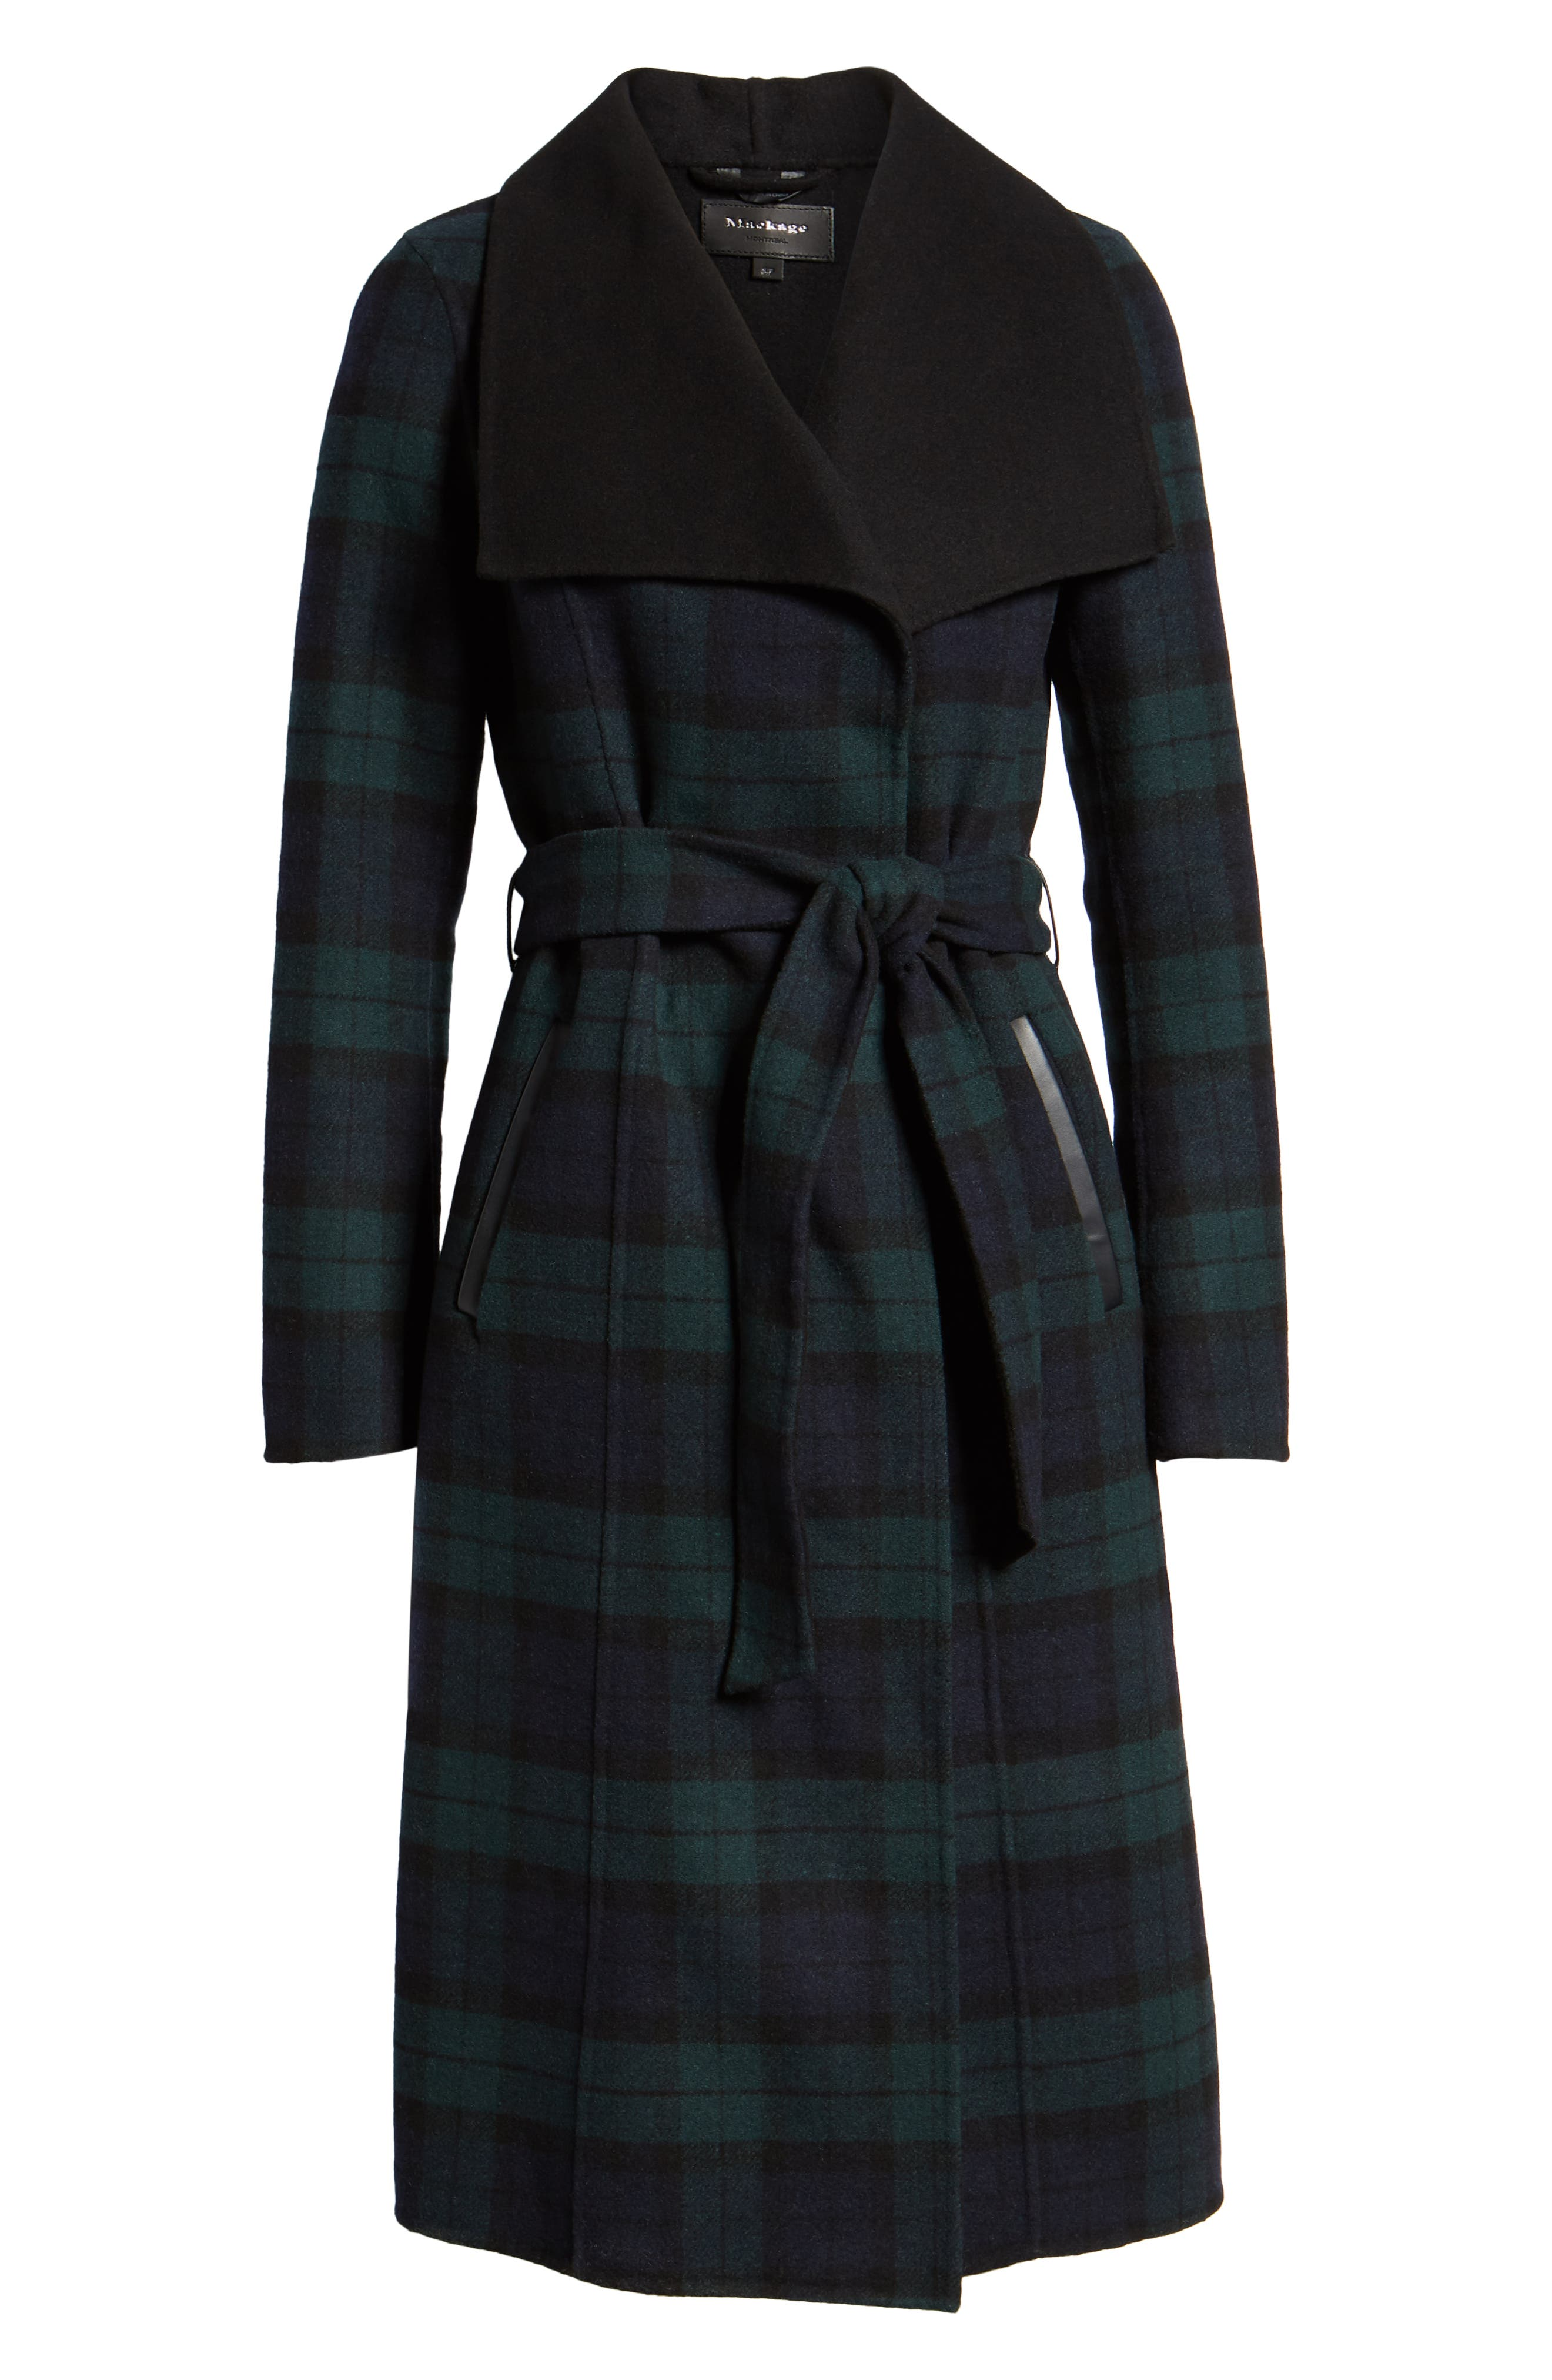 MACKAGE,                             Double Face Wool Leather Belted Coat,                             Alternate thumbnail 5, color,                             411